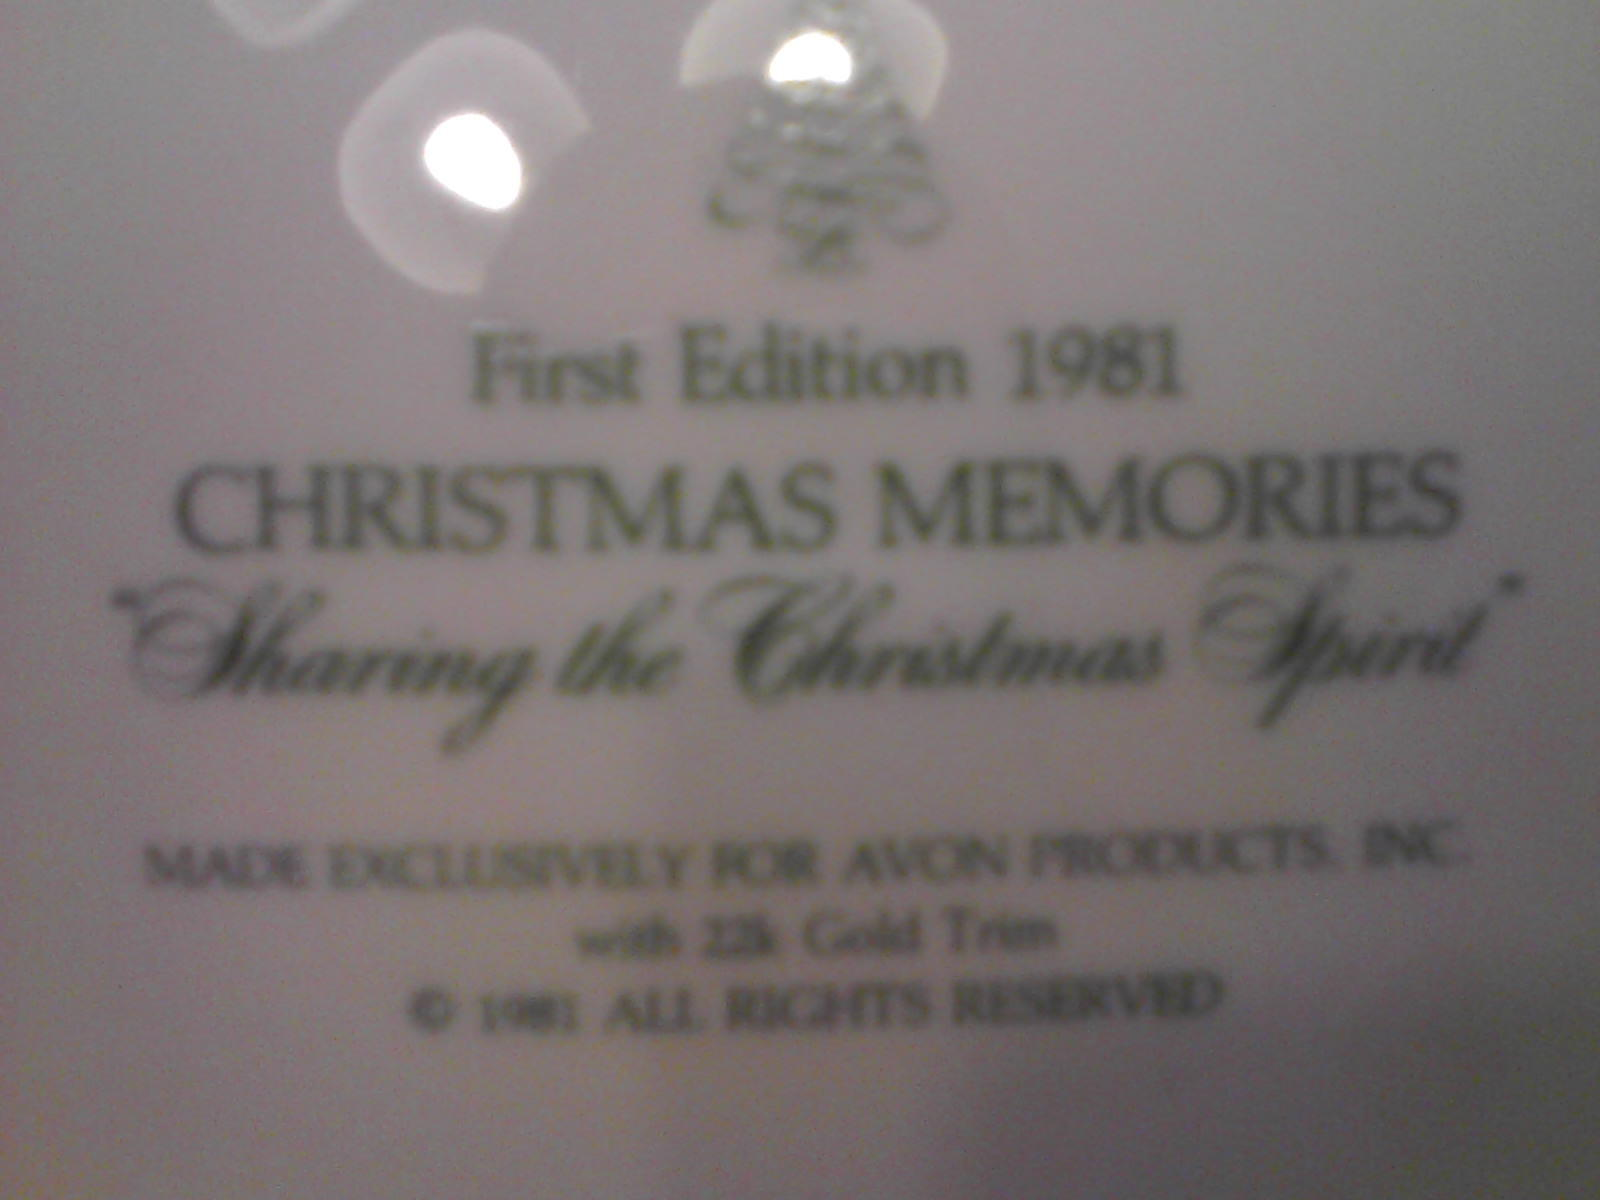 """AVON FIRST EDITION 1981 CHRISTMAS MEMORIES """"SHARING THE CHRISTMAS SPIRIT"""" IN BOX"""